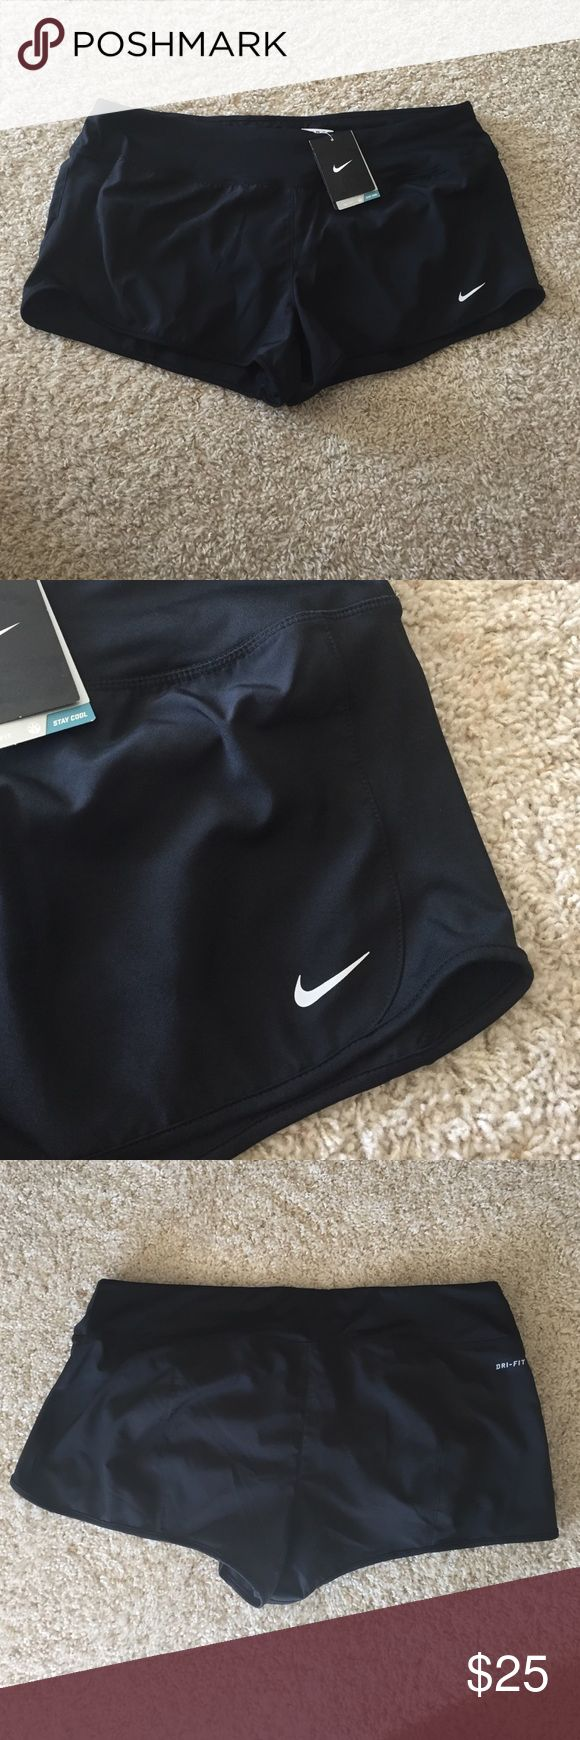 Nike Running Dri Fit Shorts Black on black Nike shorts with Dri fit technology. Has interior lining. No trades. Nike Shorts